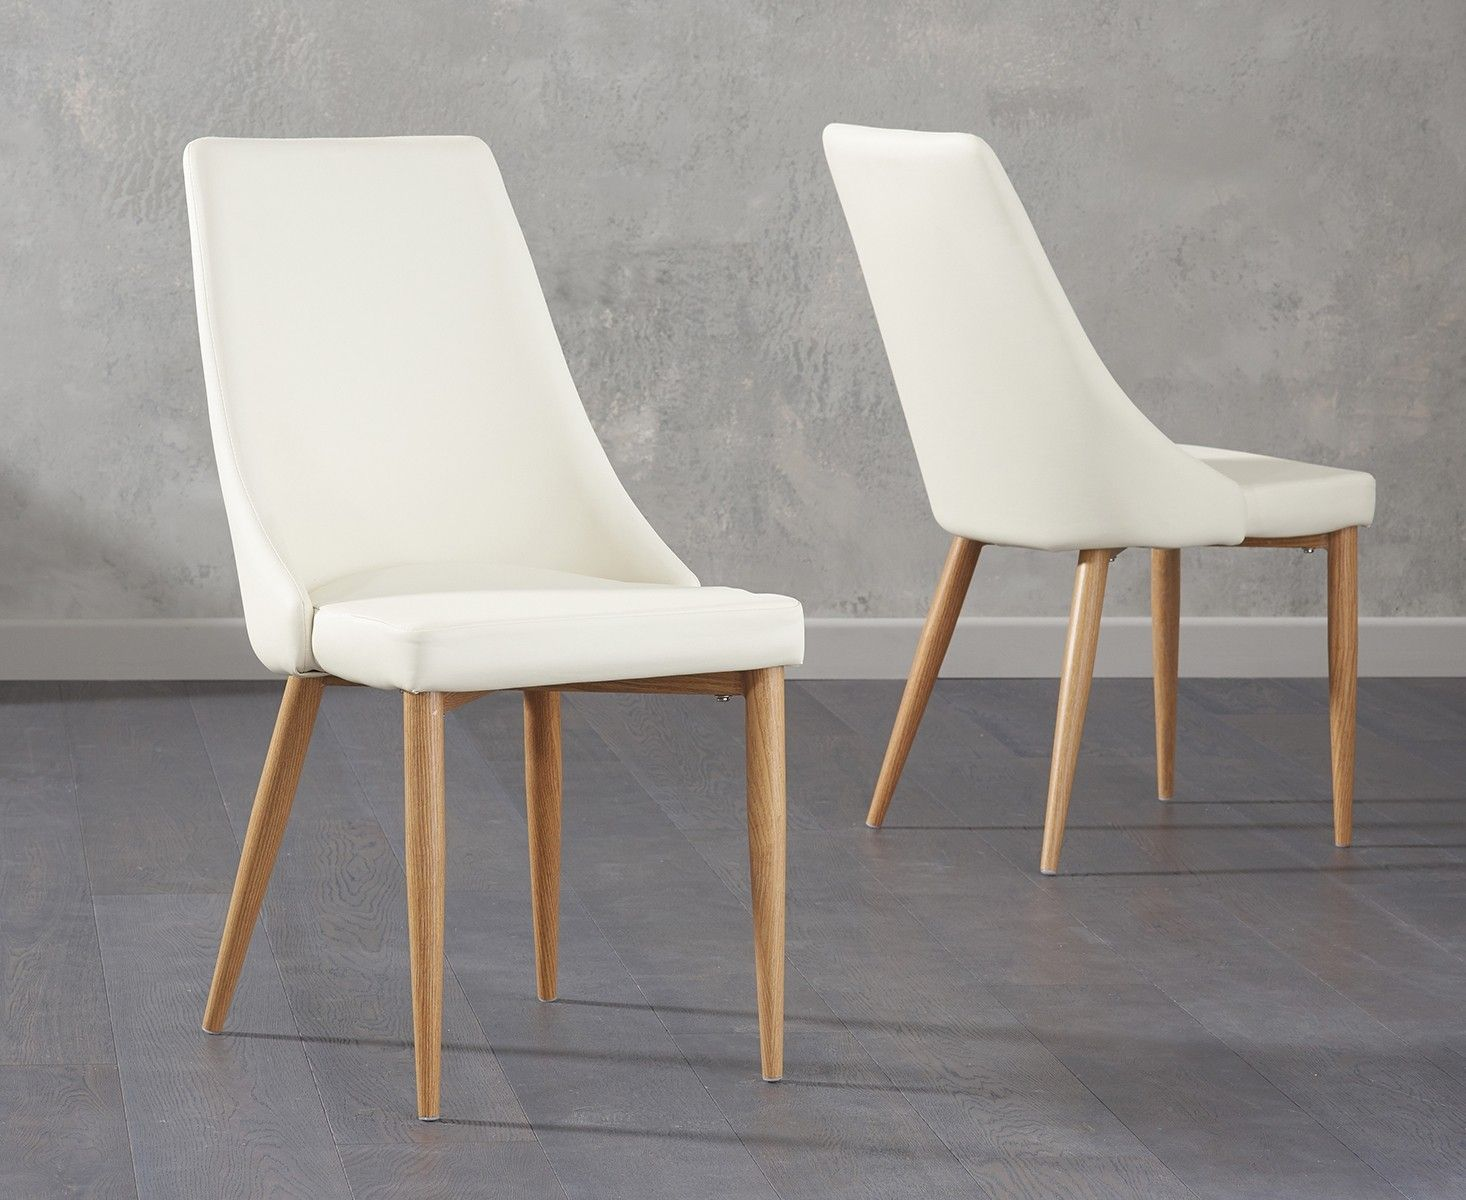 Ashford Cream Faux Leather Dining Chairs  Dining Room  Pinterest Pleasing Beige Leather Dining Room Chairs Design Decoration